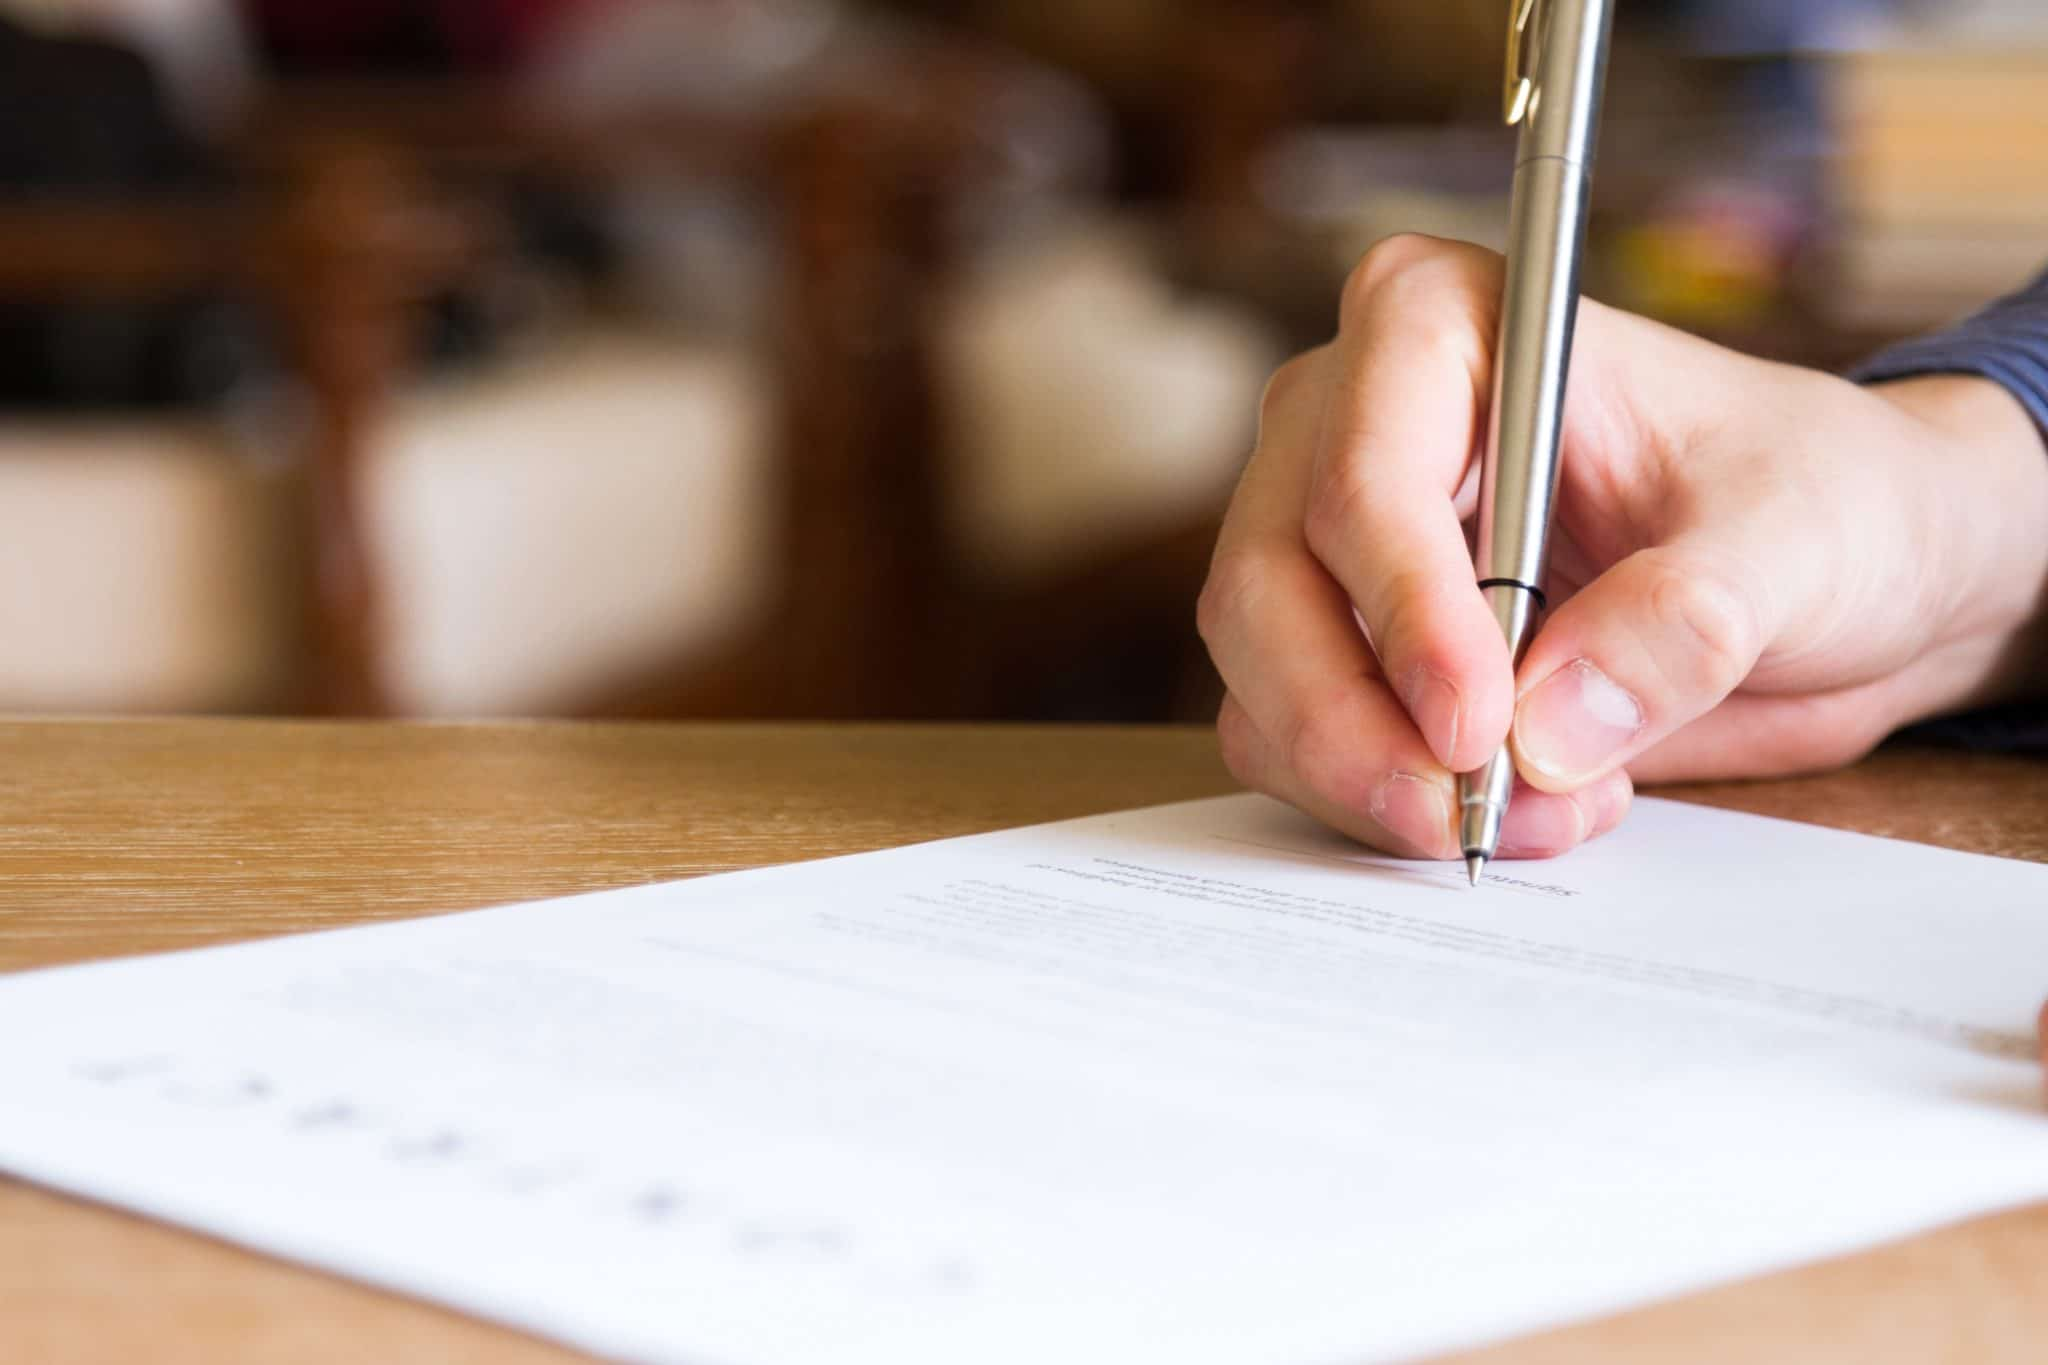 Hand holding pen to sign a printed document, just as a home inspection client must sign an agreement before their inspection